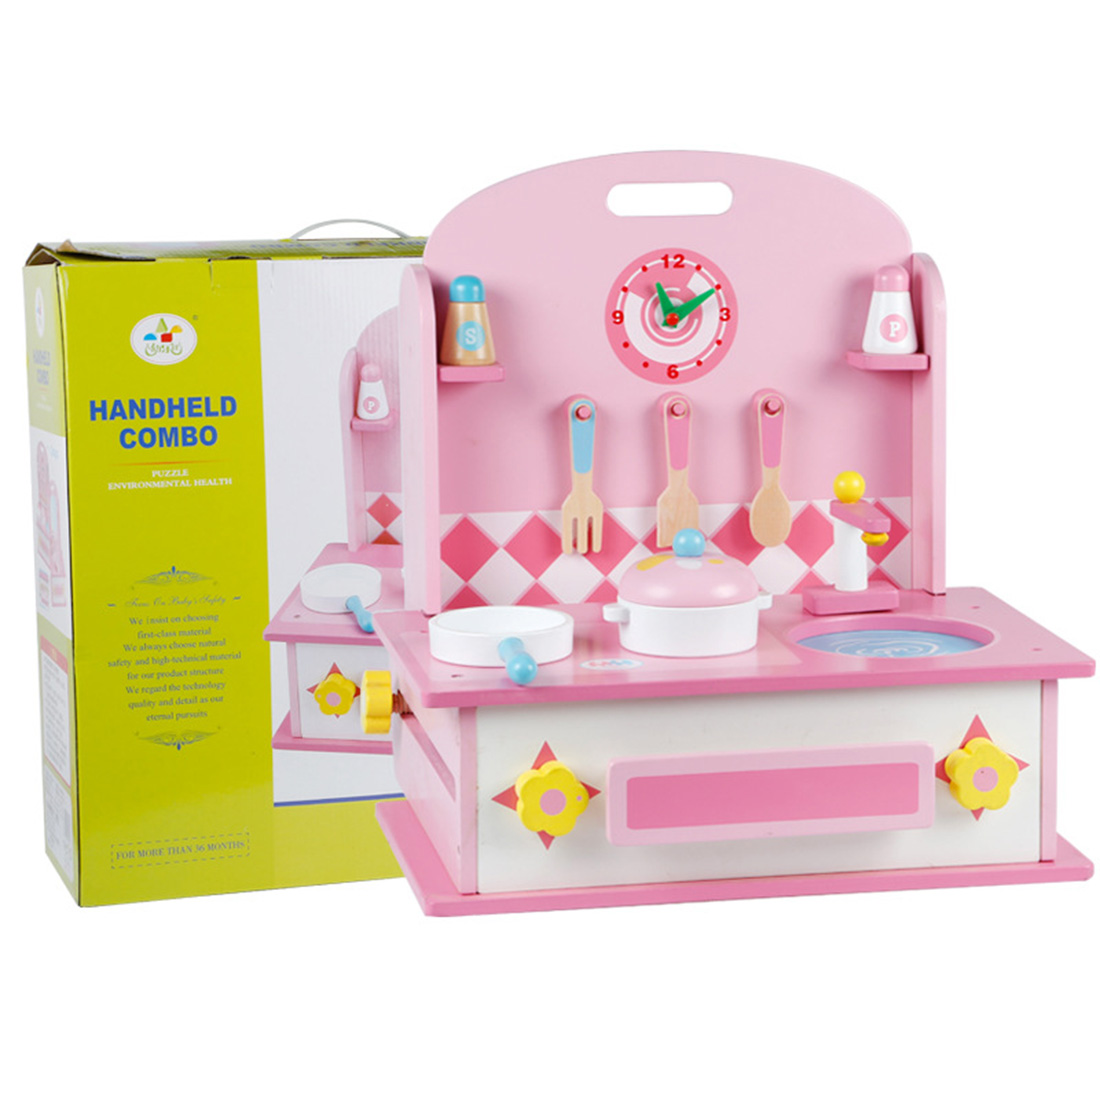 14Pcs 2-in-1 Children Pretend Play Wooden Dressing Table Kitchen Counter Playset Educational Make Up Toy Gift Set For Girls